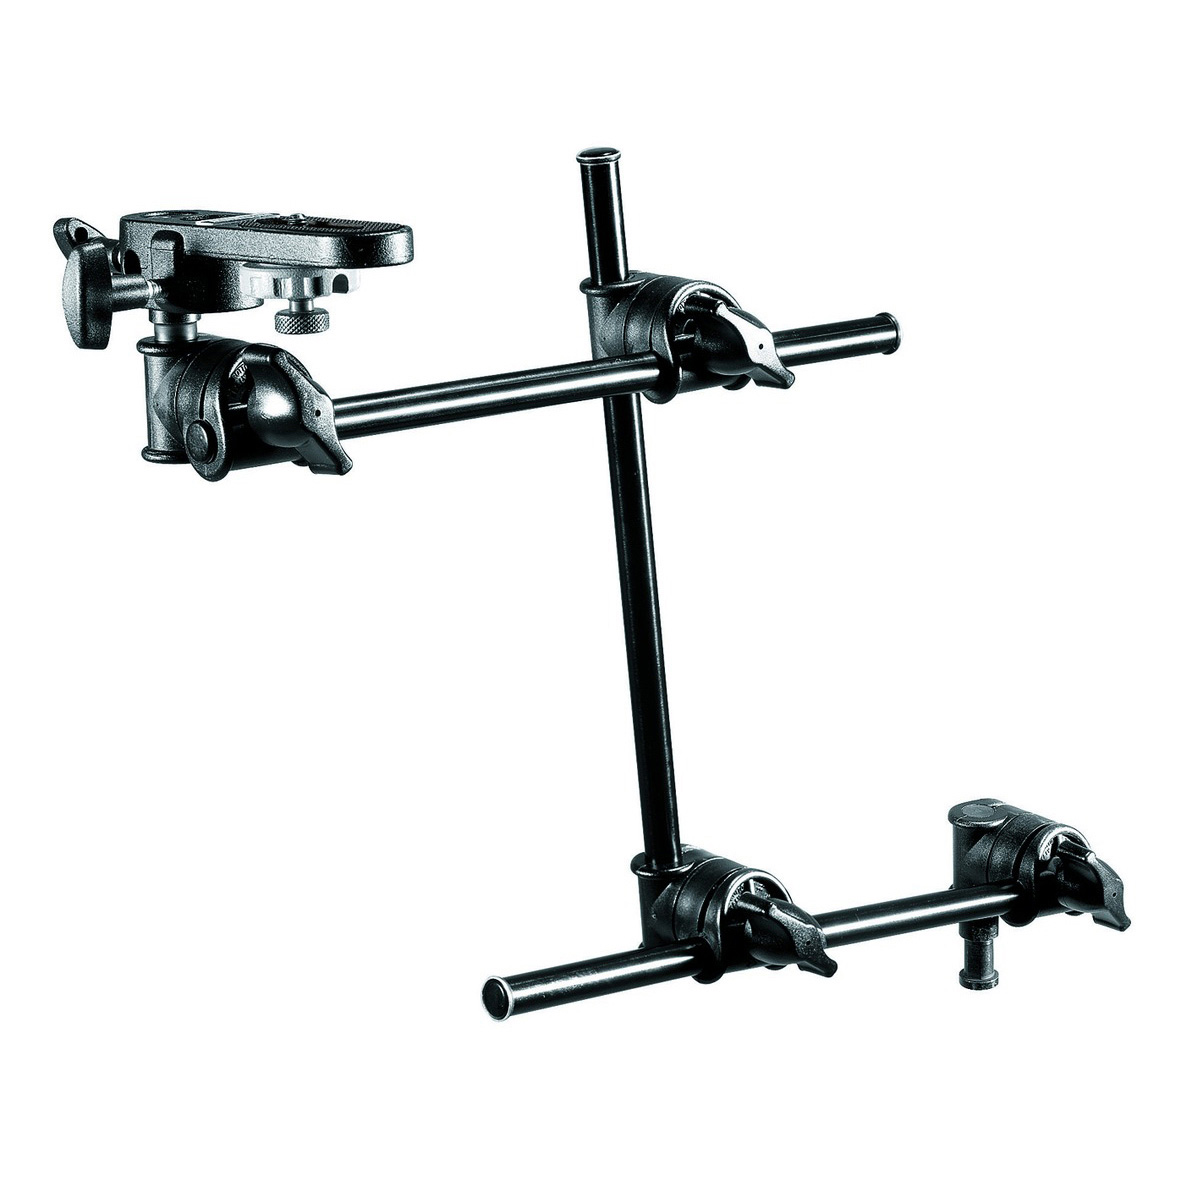 Manfrotto 196B-3 3-Section Single Articulated Arm with